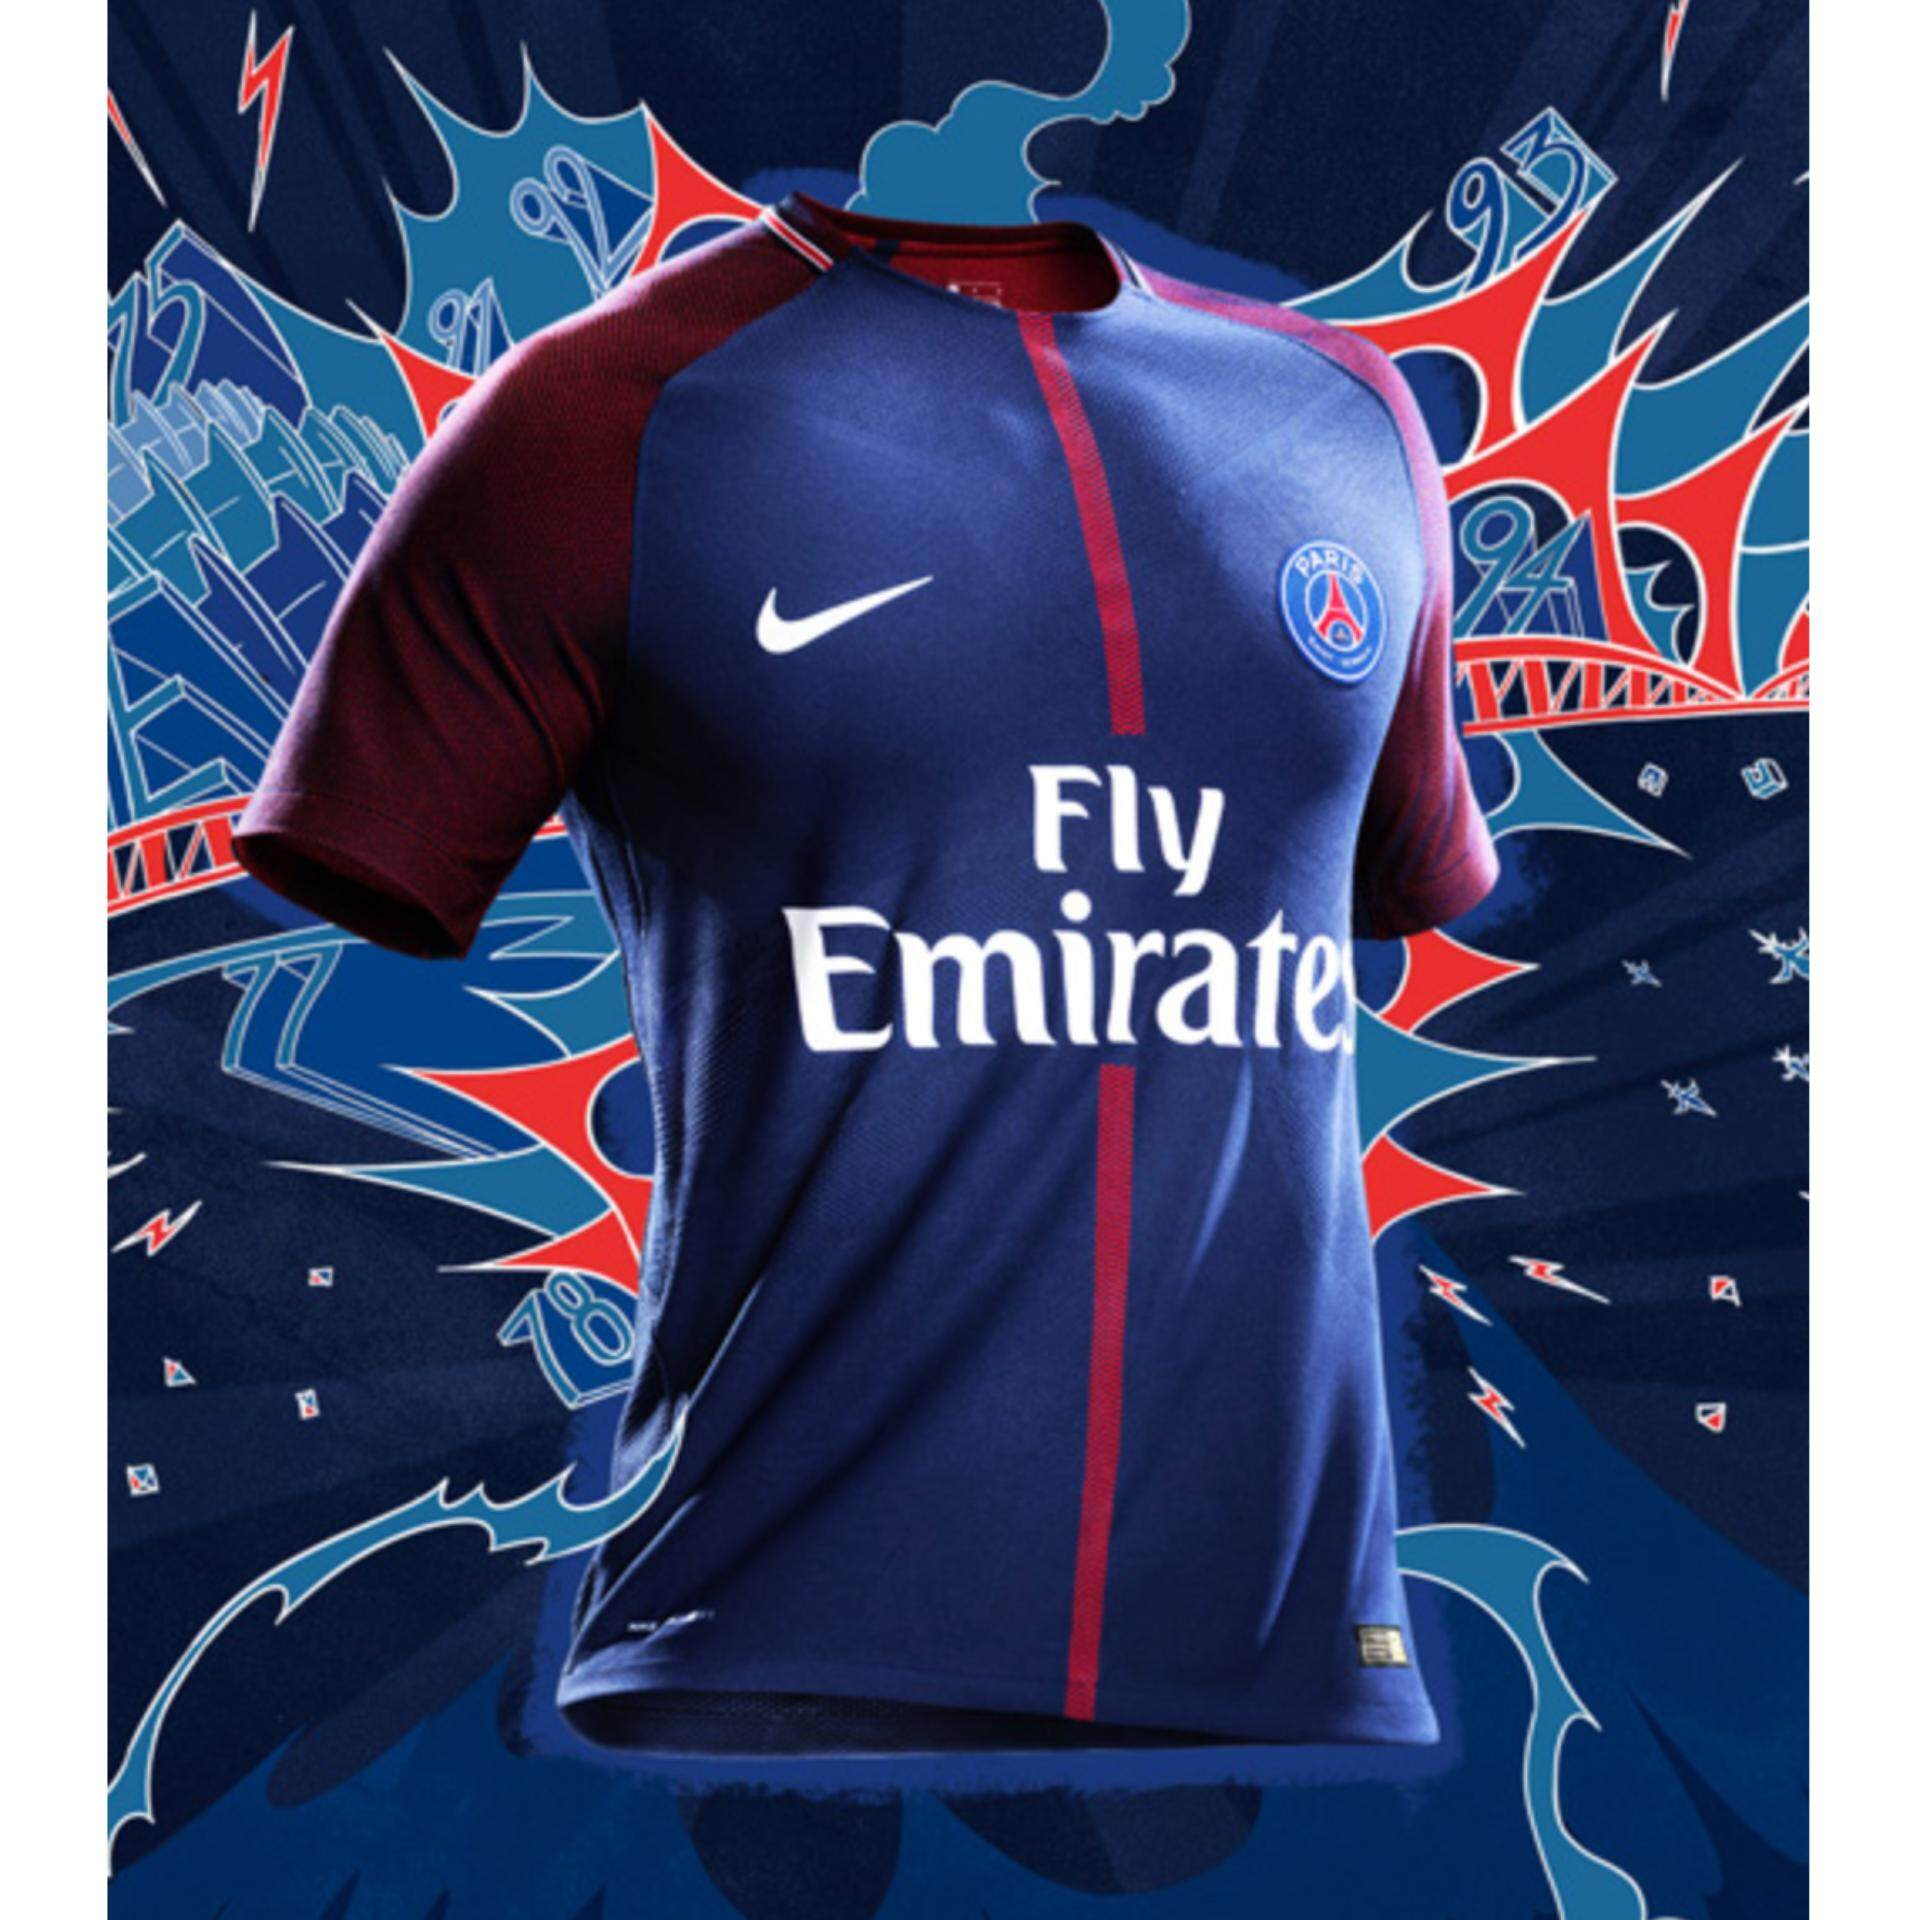 Jual Paris St Germain S Home Jersey For The 2017 18 Season Intl Online